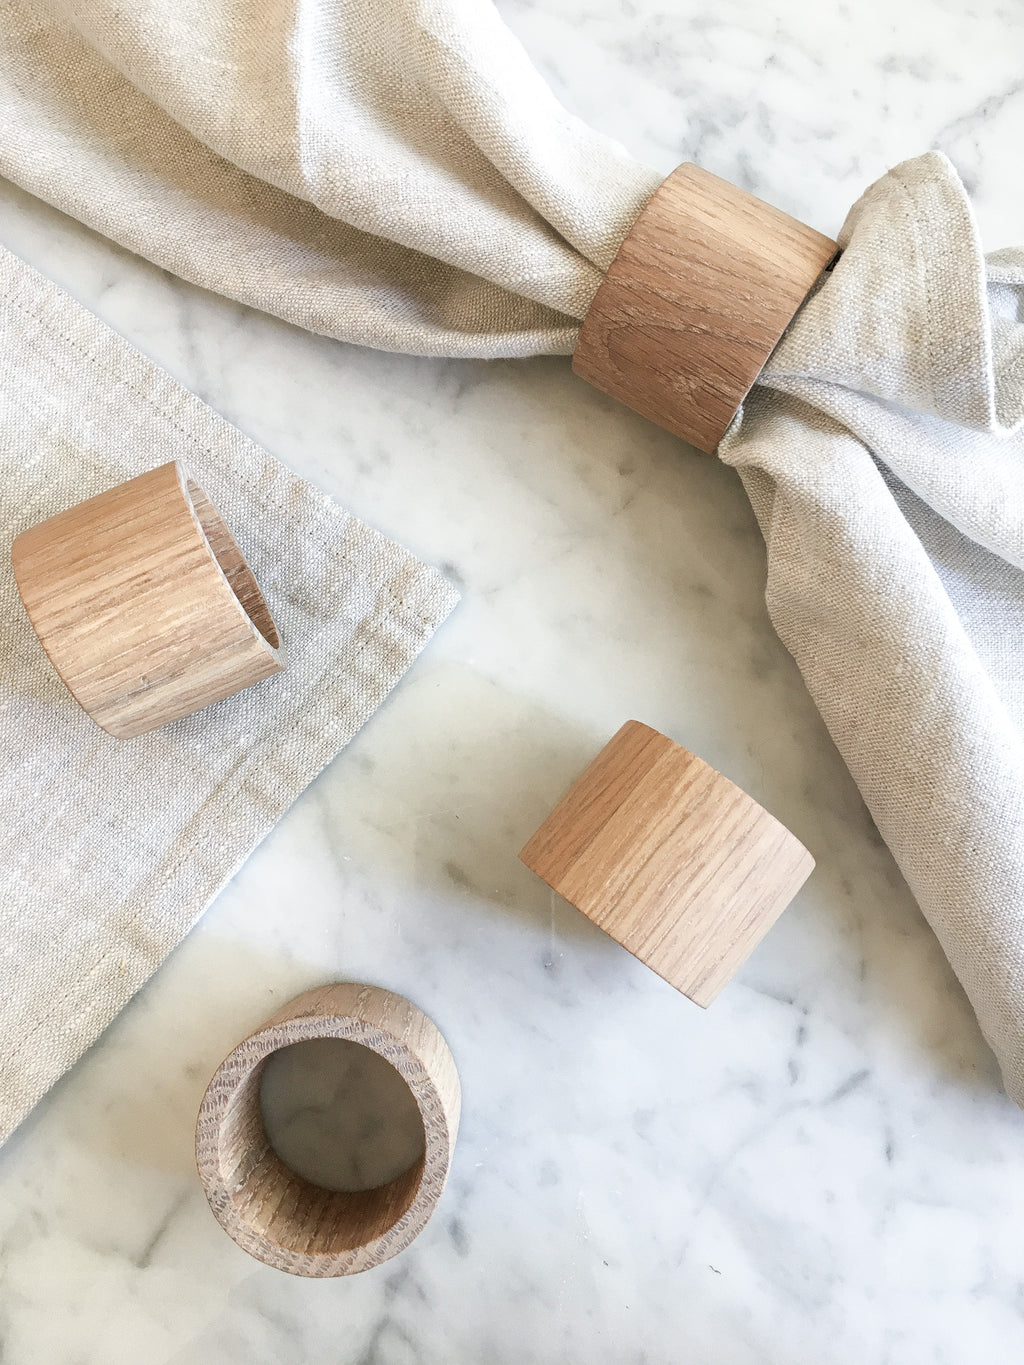 Napkin rings - ARK Workshop Homeware and Furniture